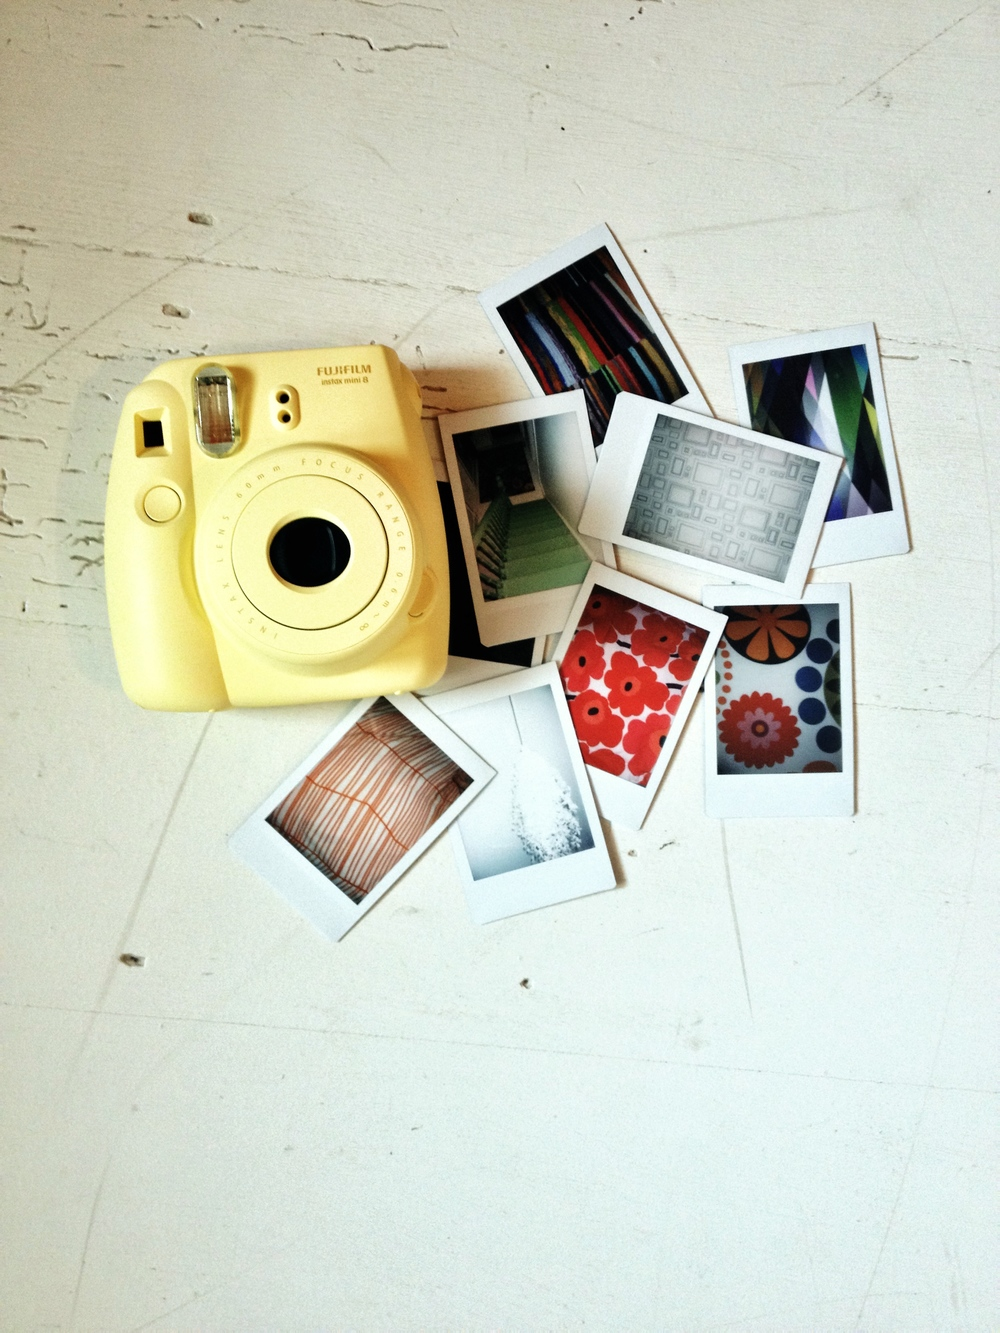 Instax mini 8 from  Fujifilm